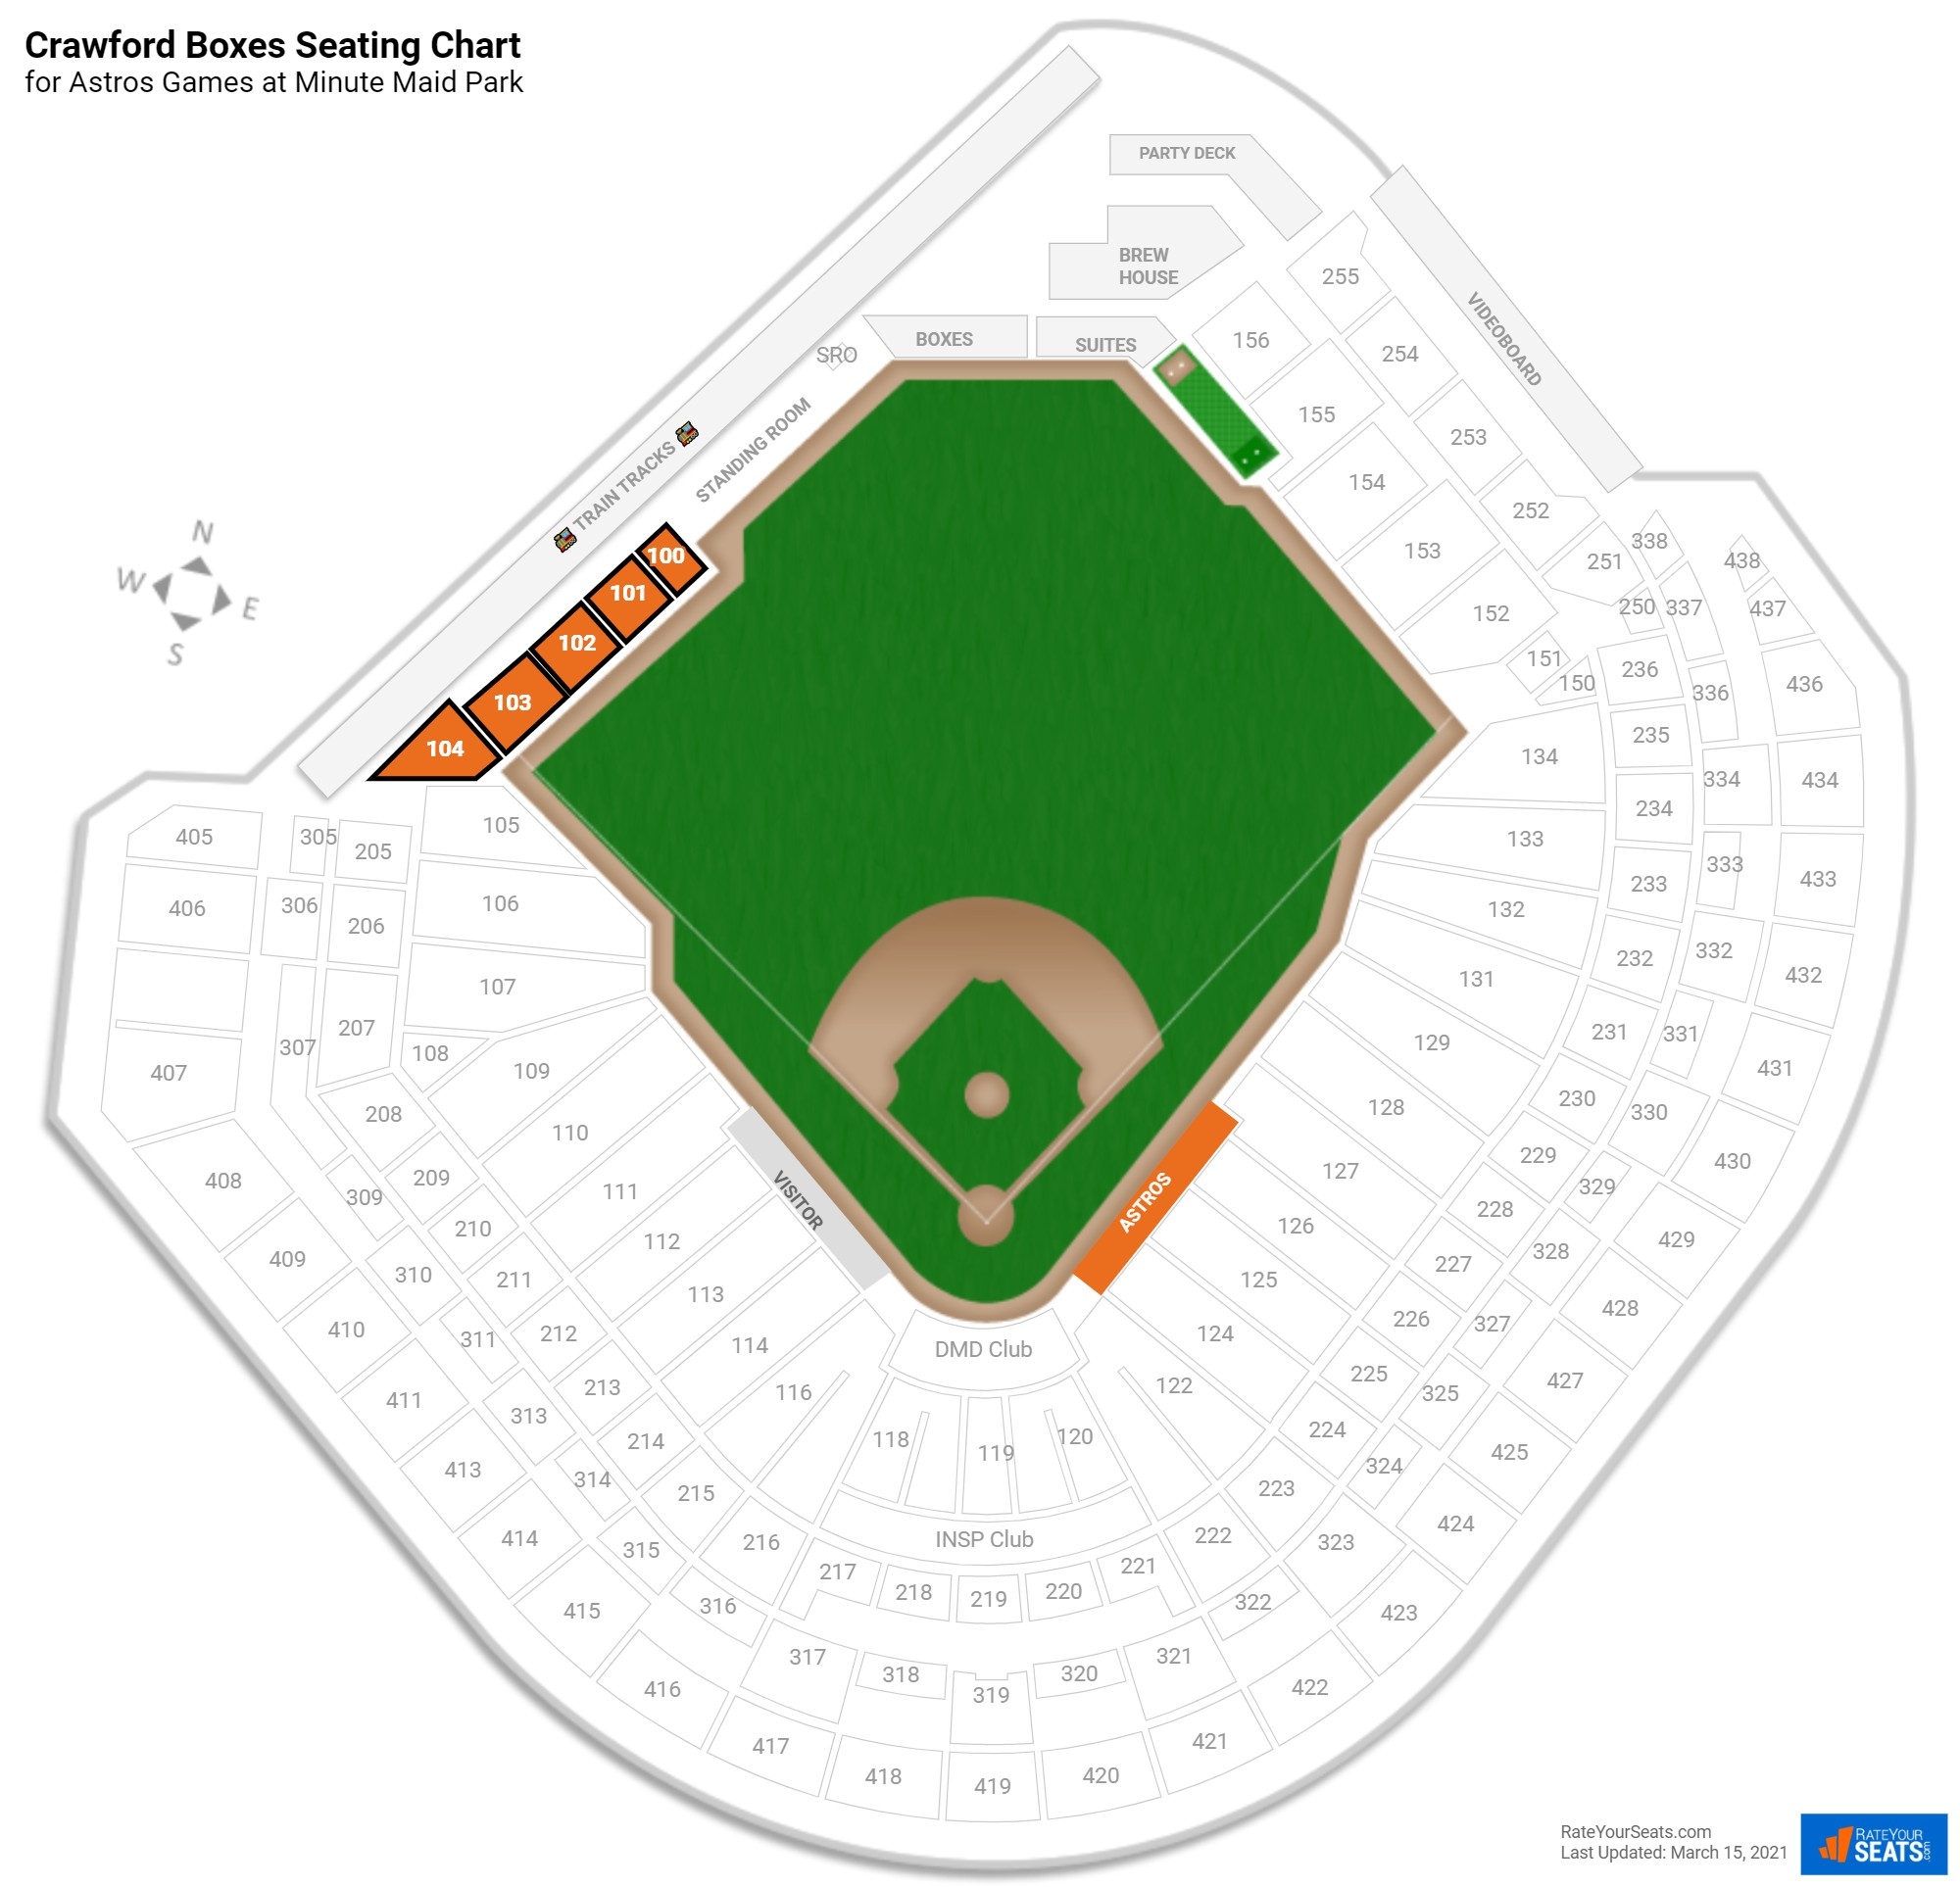 Minute Maid Park Crawford Boxes seating chart